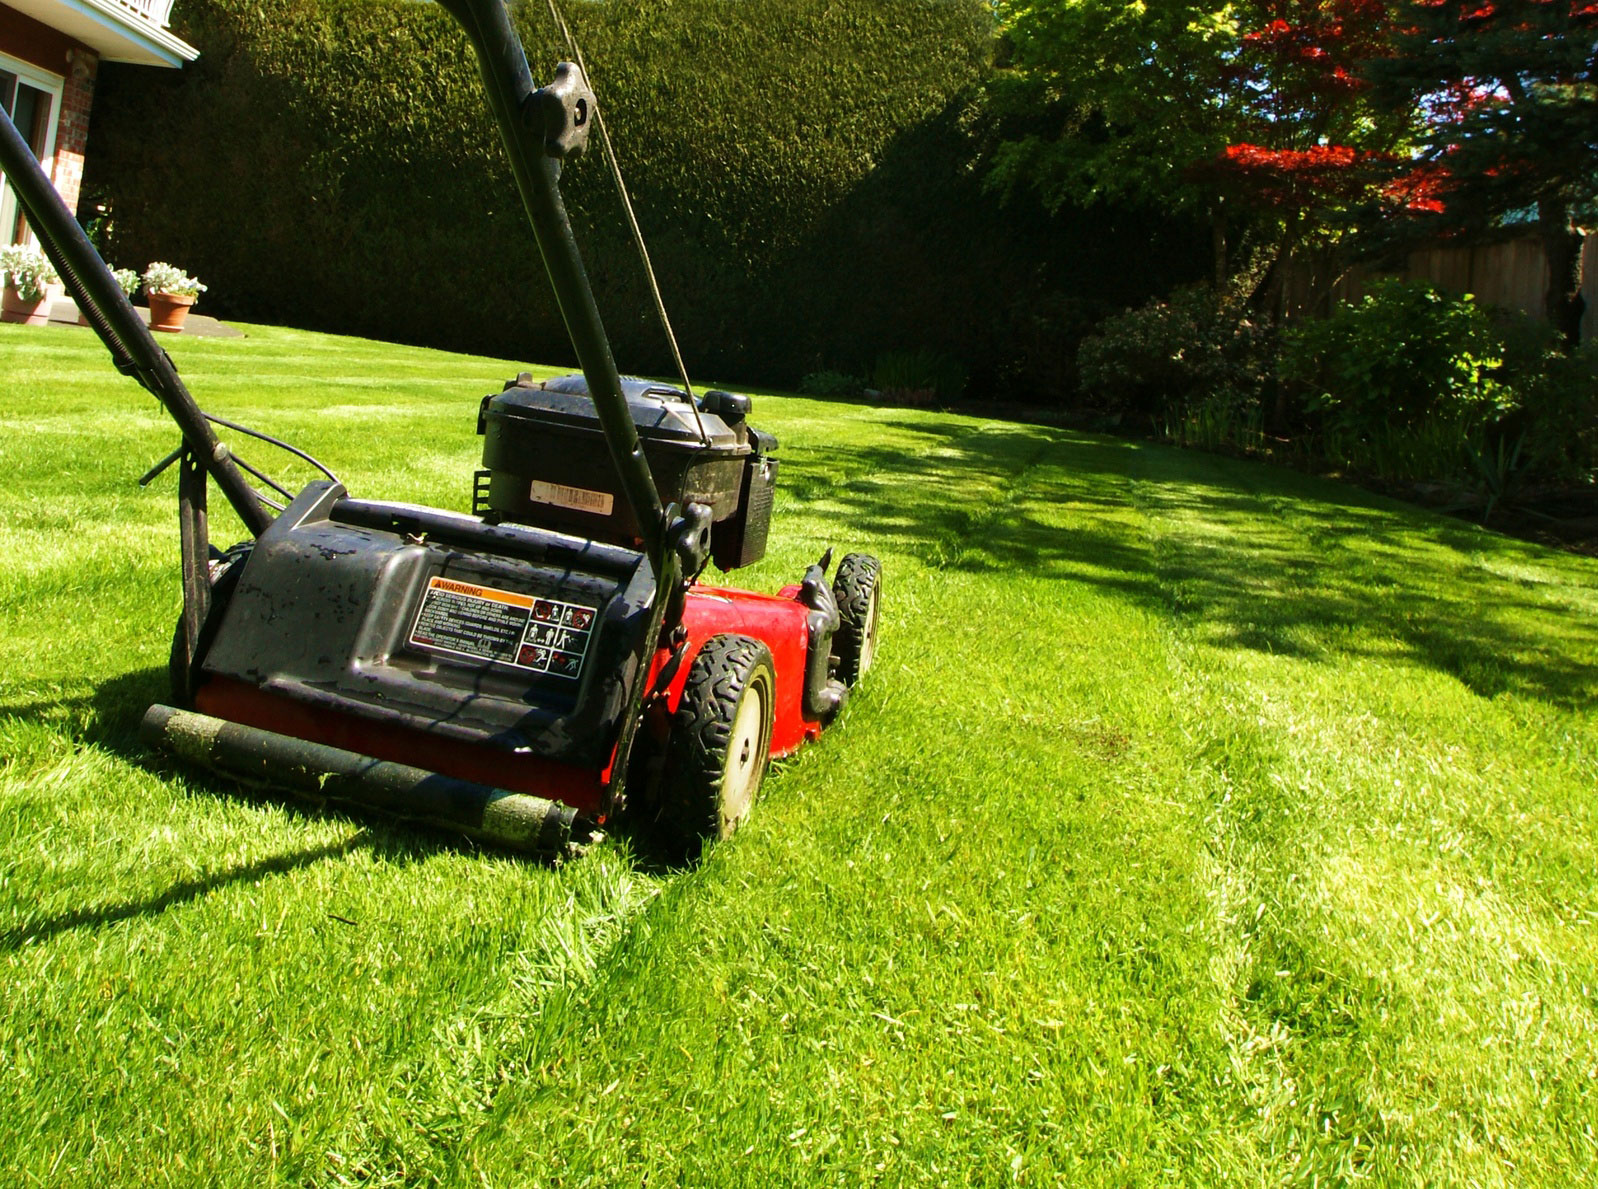 Grass Cutting with lawnmower.jpg